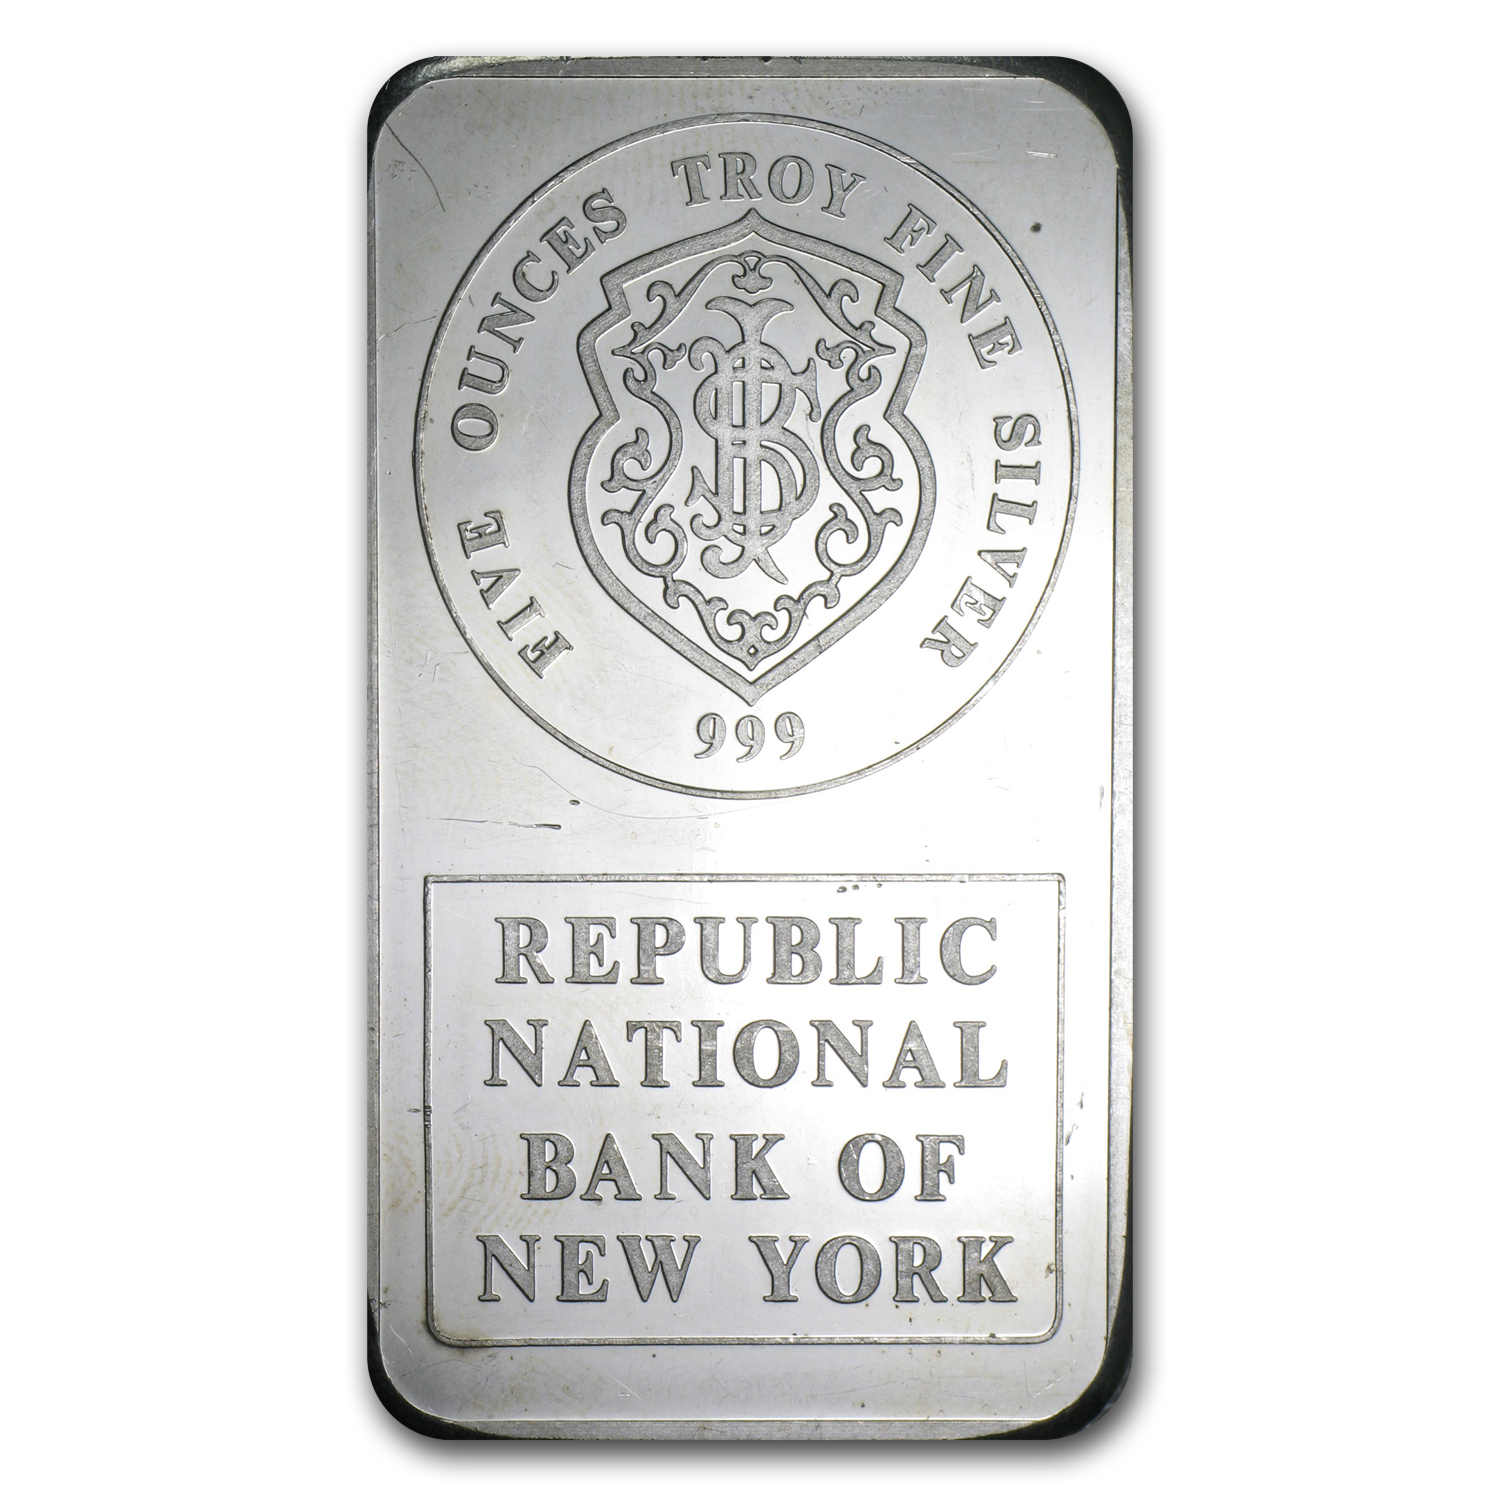 5 oz Silver Bars - Johnson Matthey (Republic National Bank of NY)